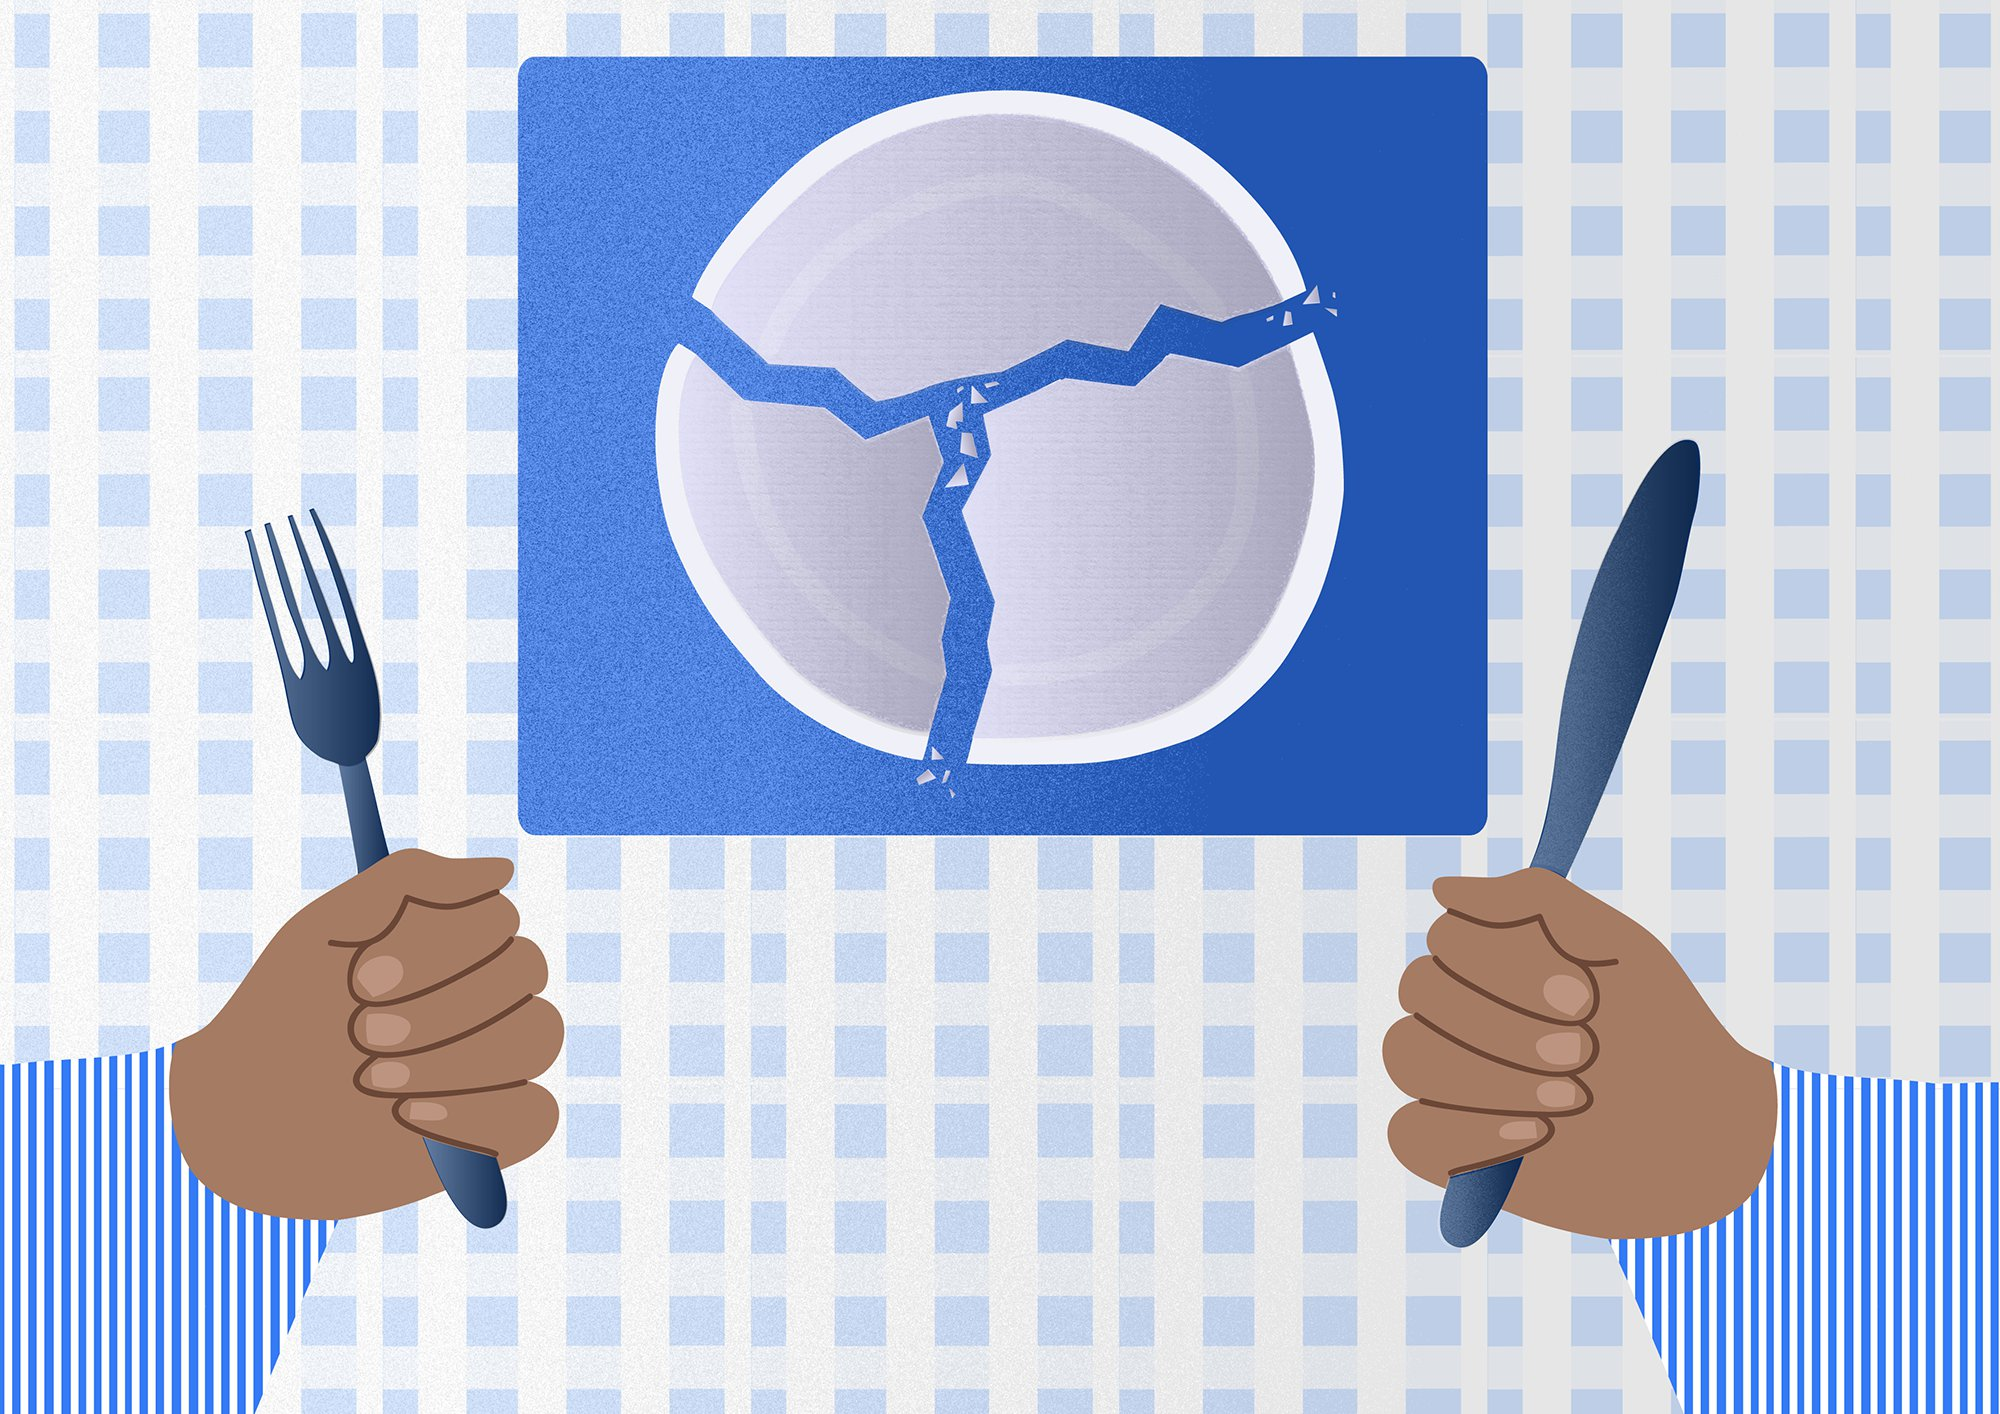 What's the difference between disordered eating and an eating disorder?